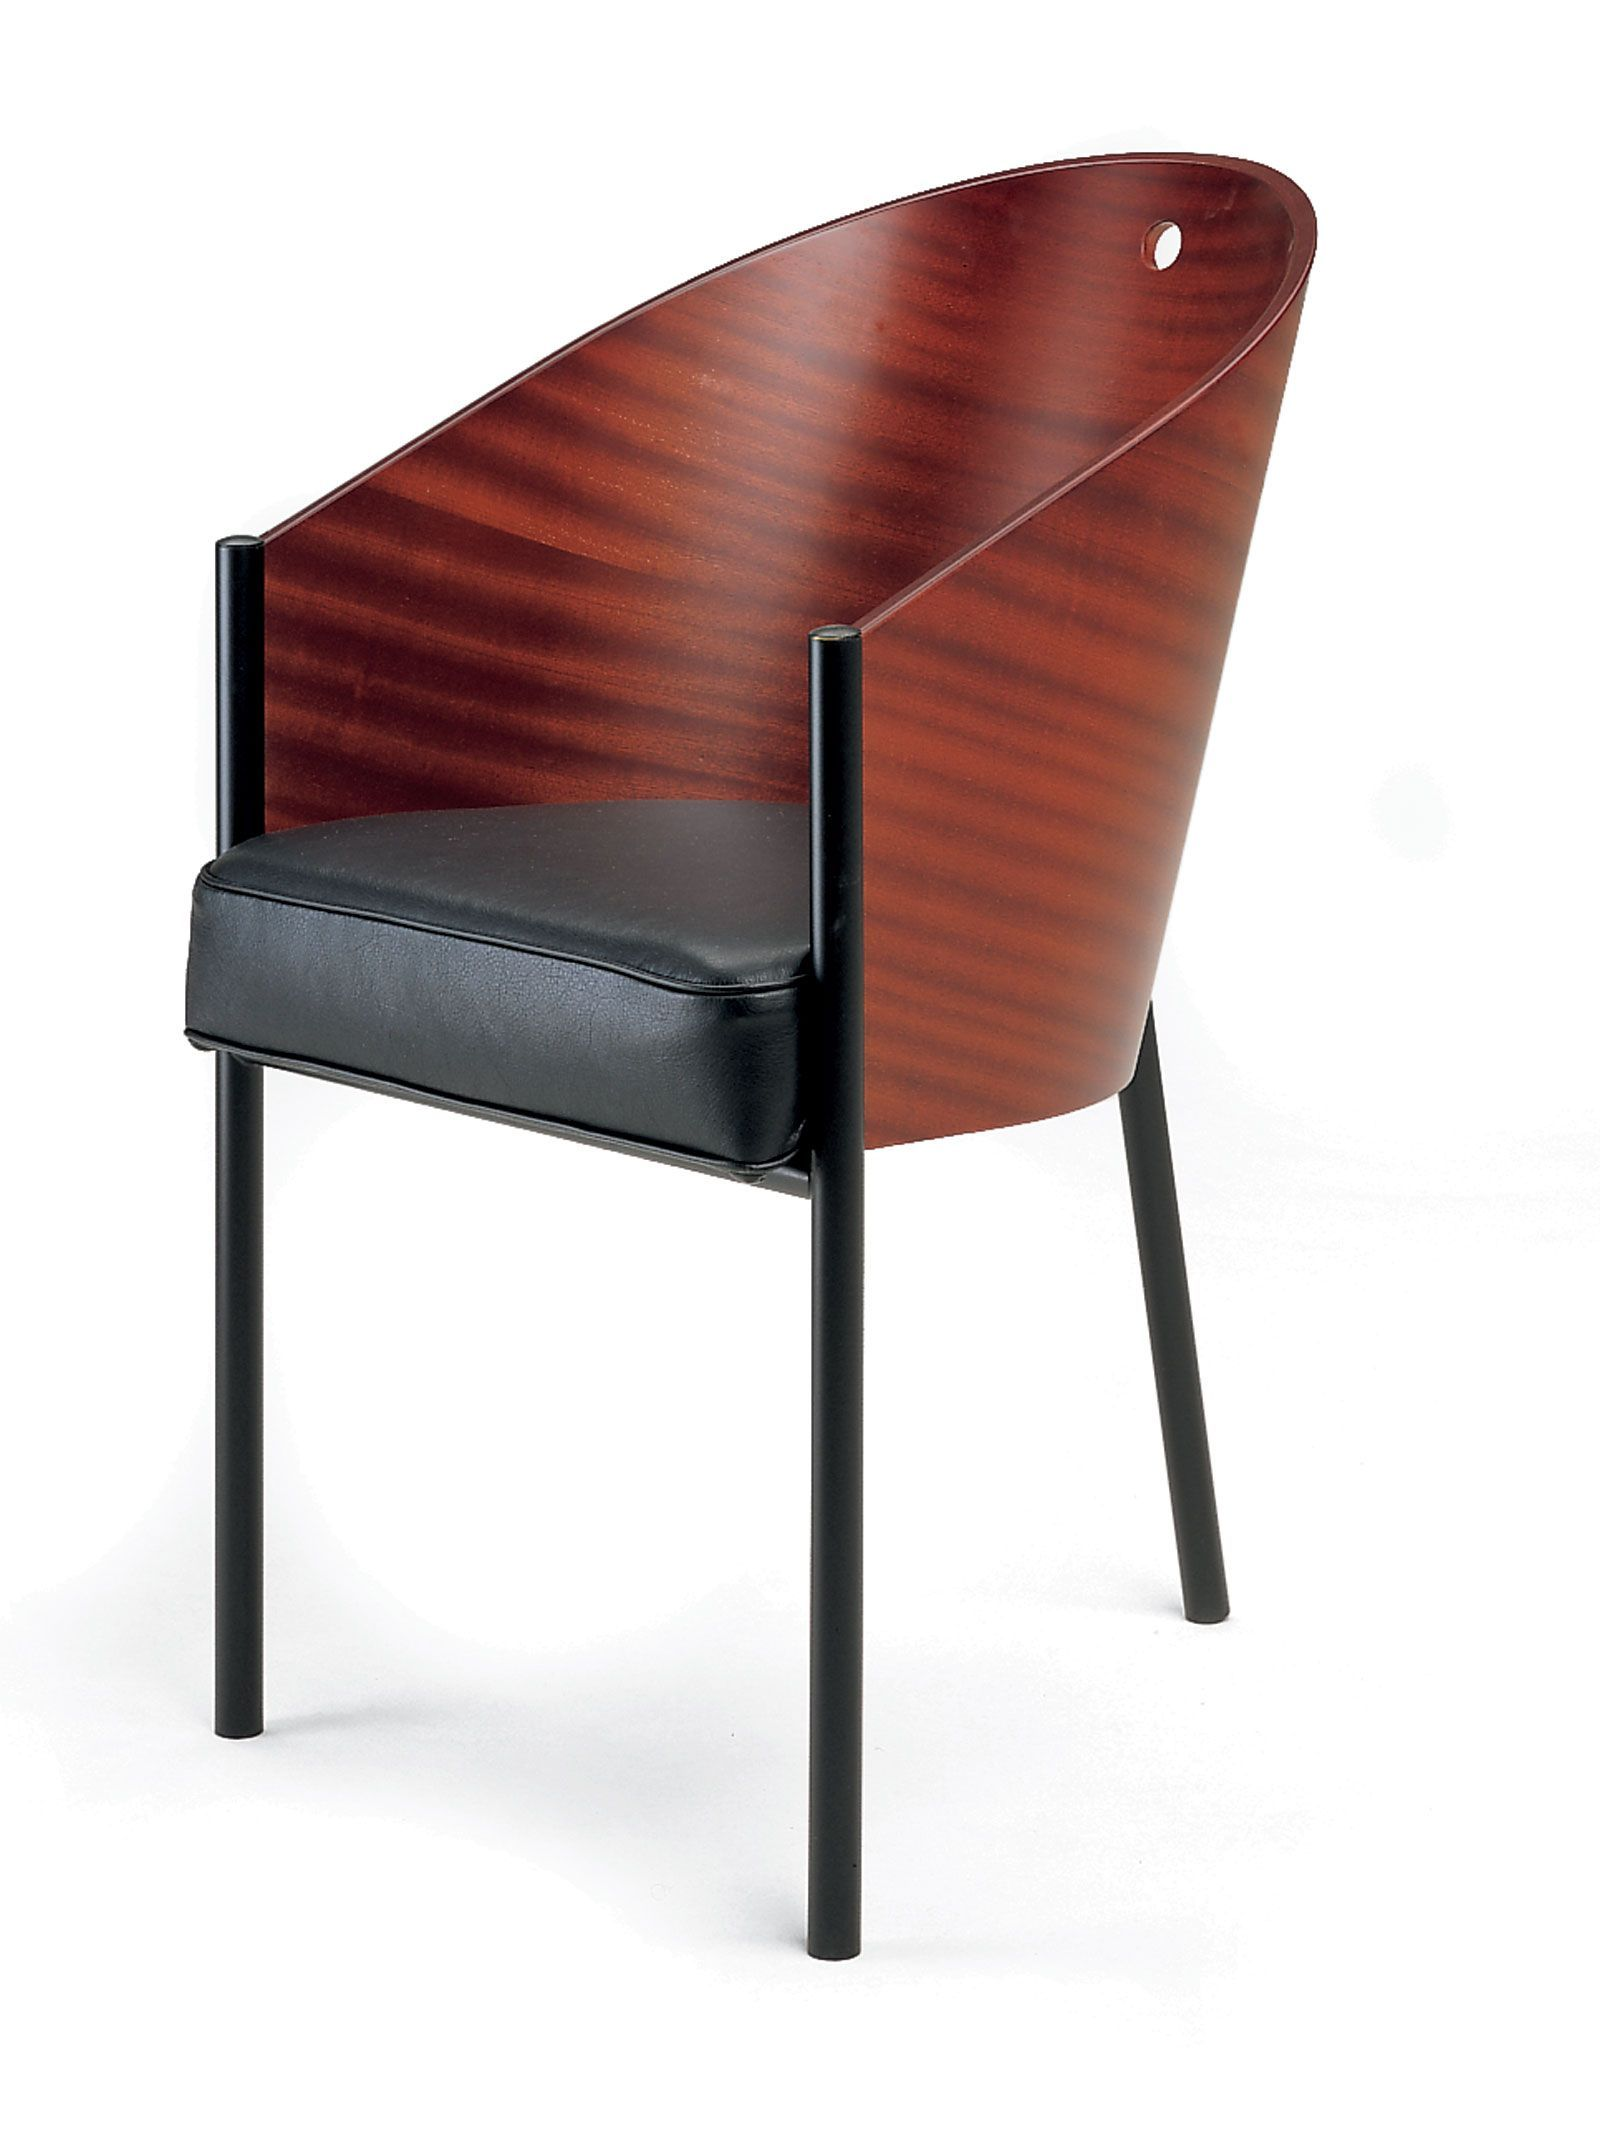 Costes Chair By: Philippe Starck 1982 (France)